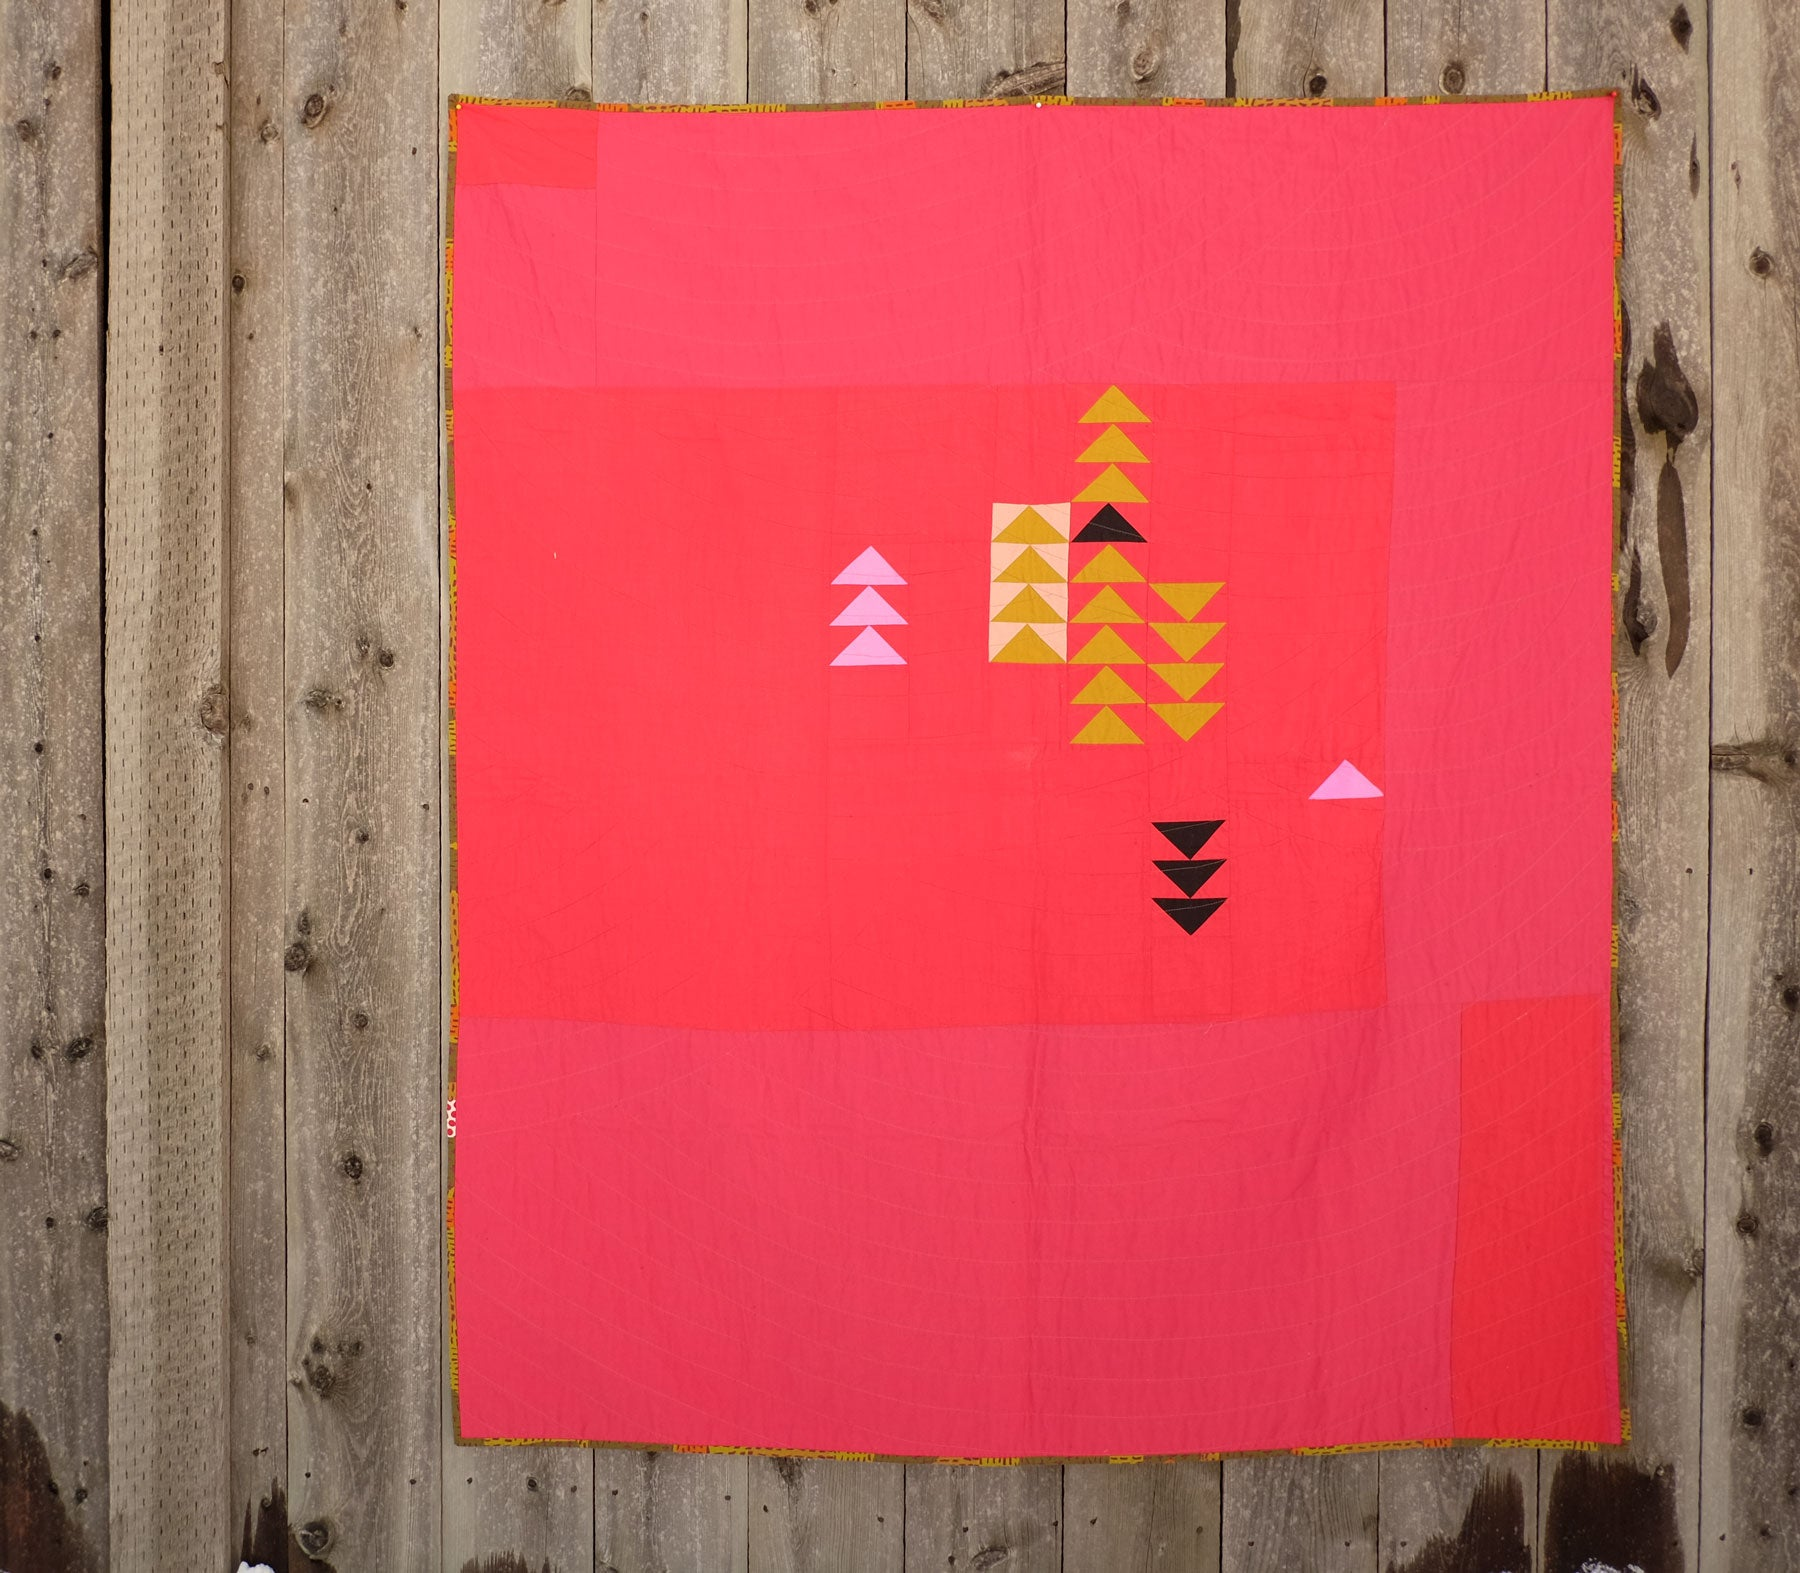 Shawna Doering's Red Hot Quilt hanging on a fence